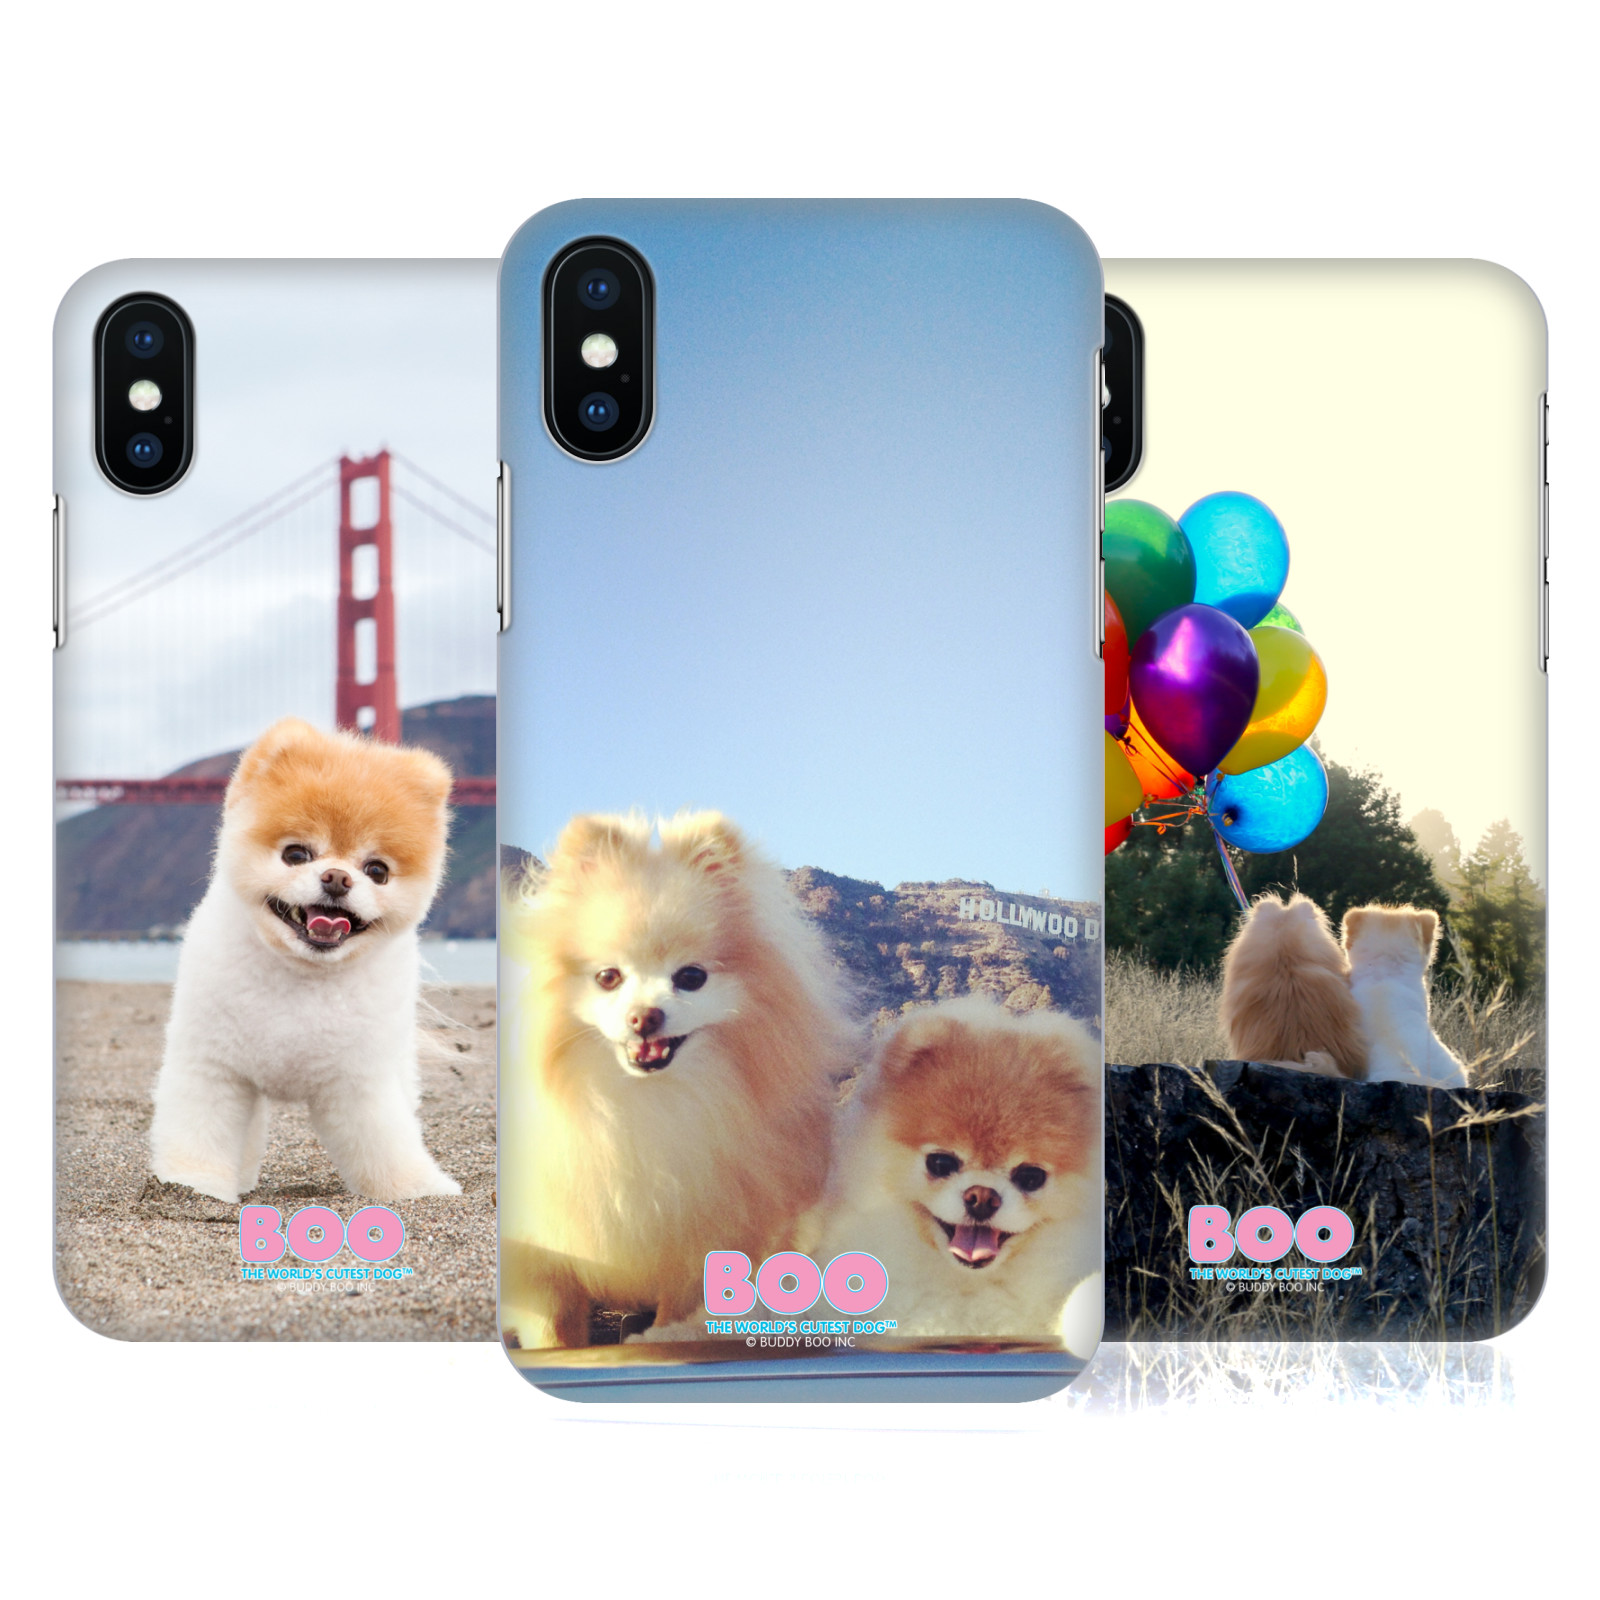 Boo-The World's Cutest Dog Adventure